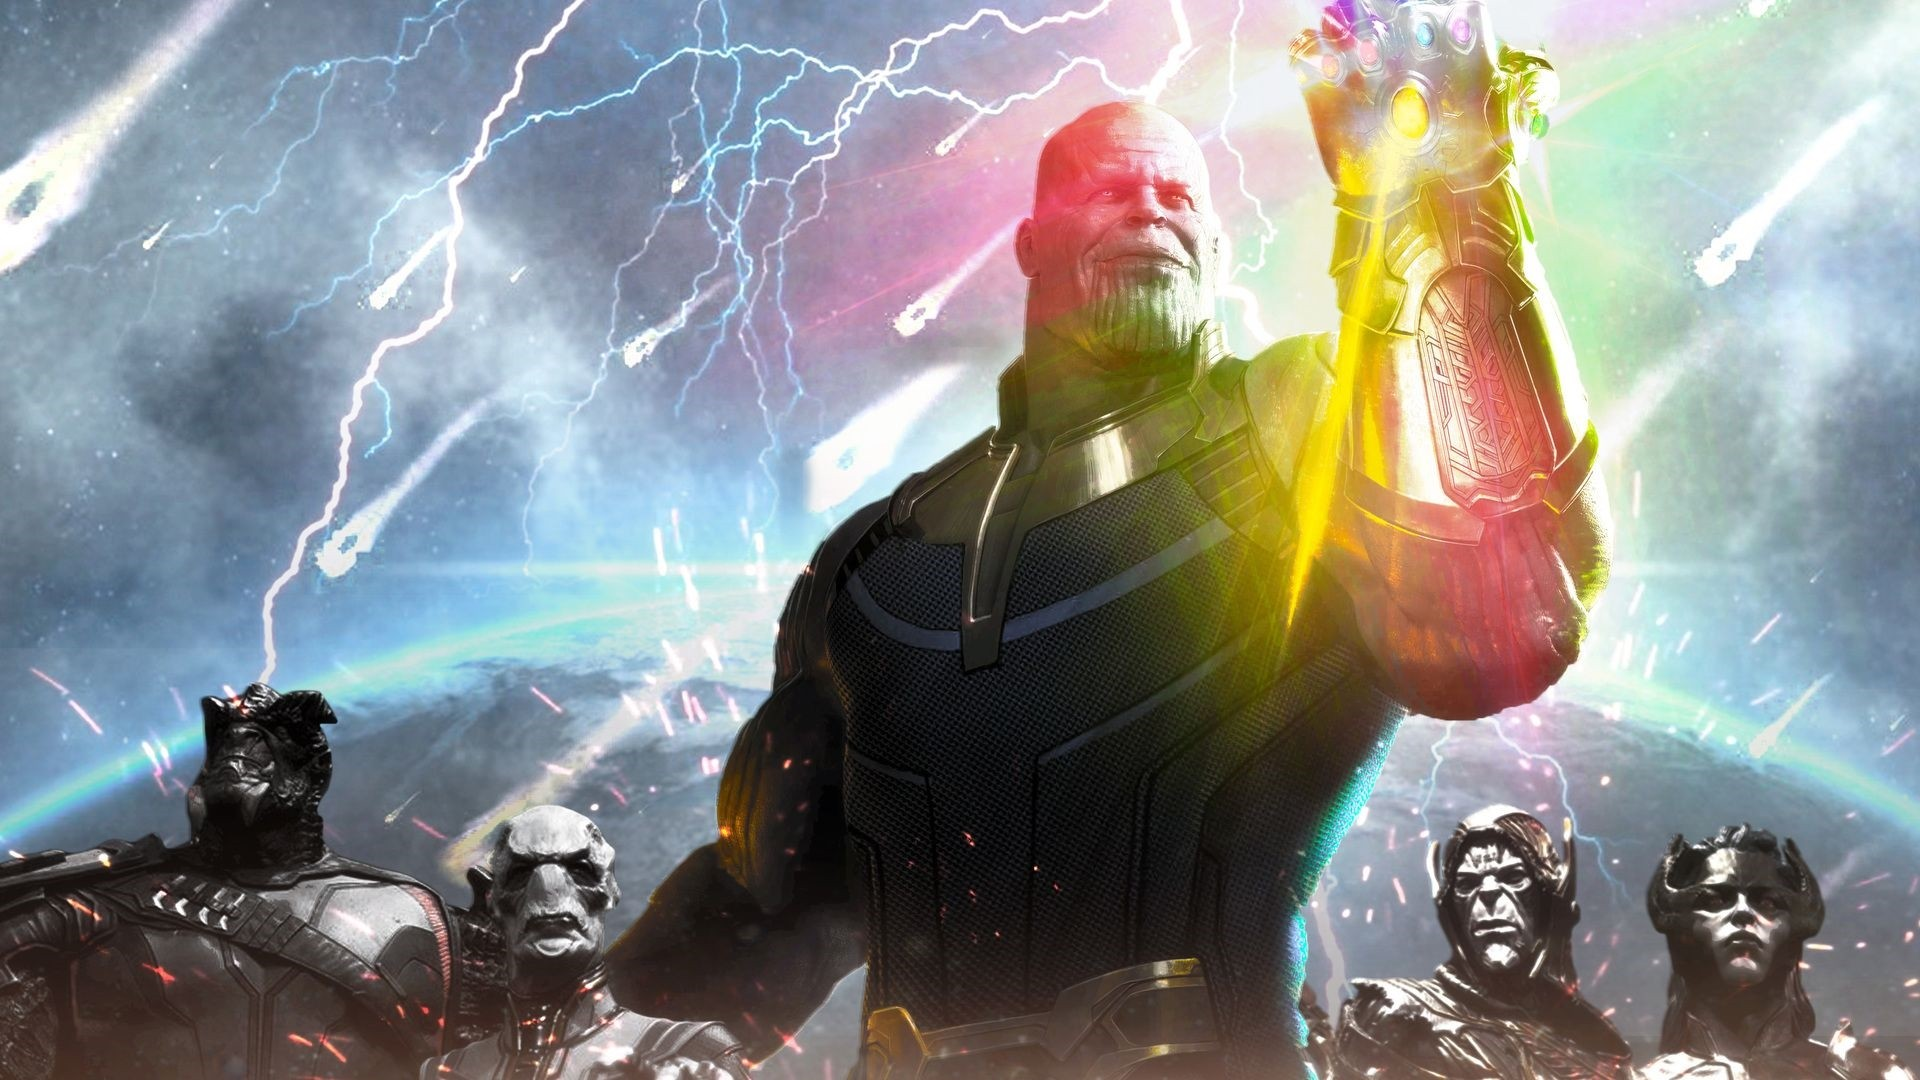 Thanos wallpaper photo hd